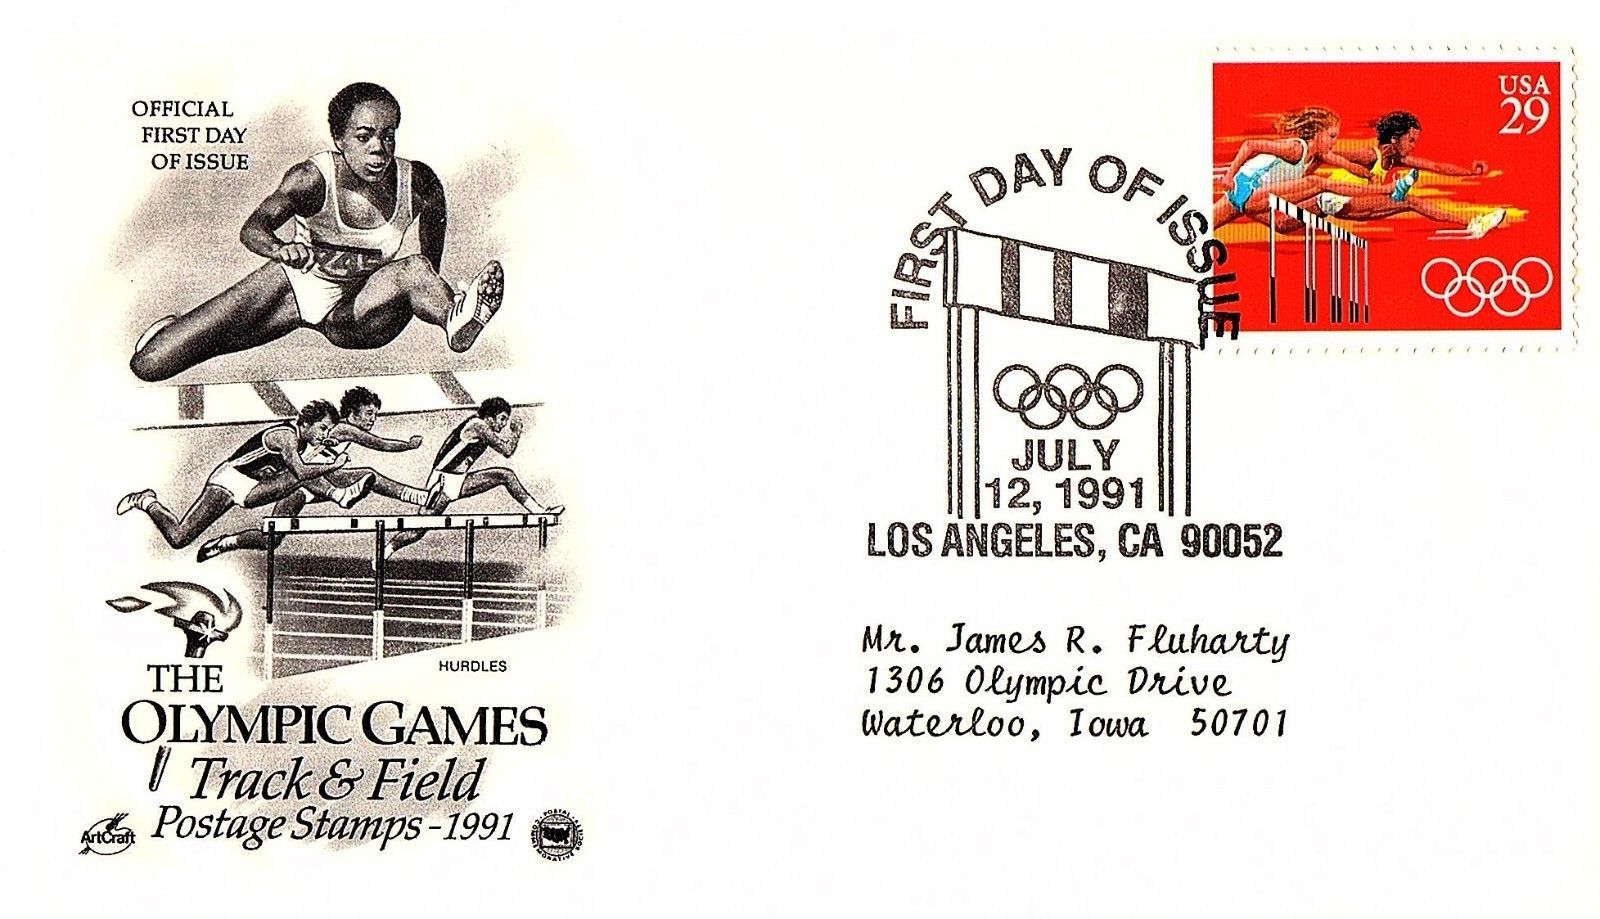 July 12, 1991 First Day of Issue, Postal Society Cover, Olympic Track & Field #1